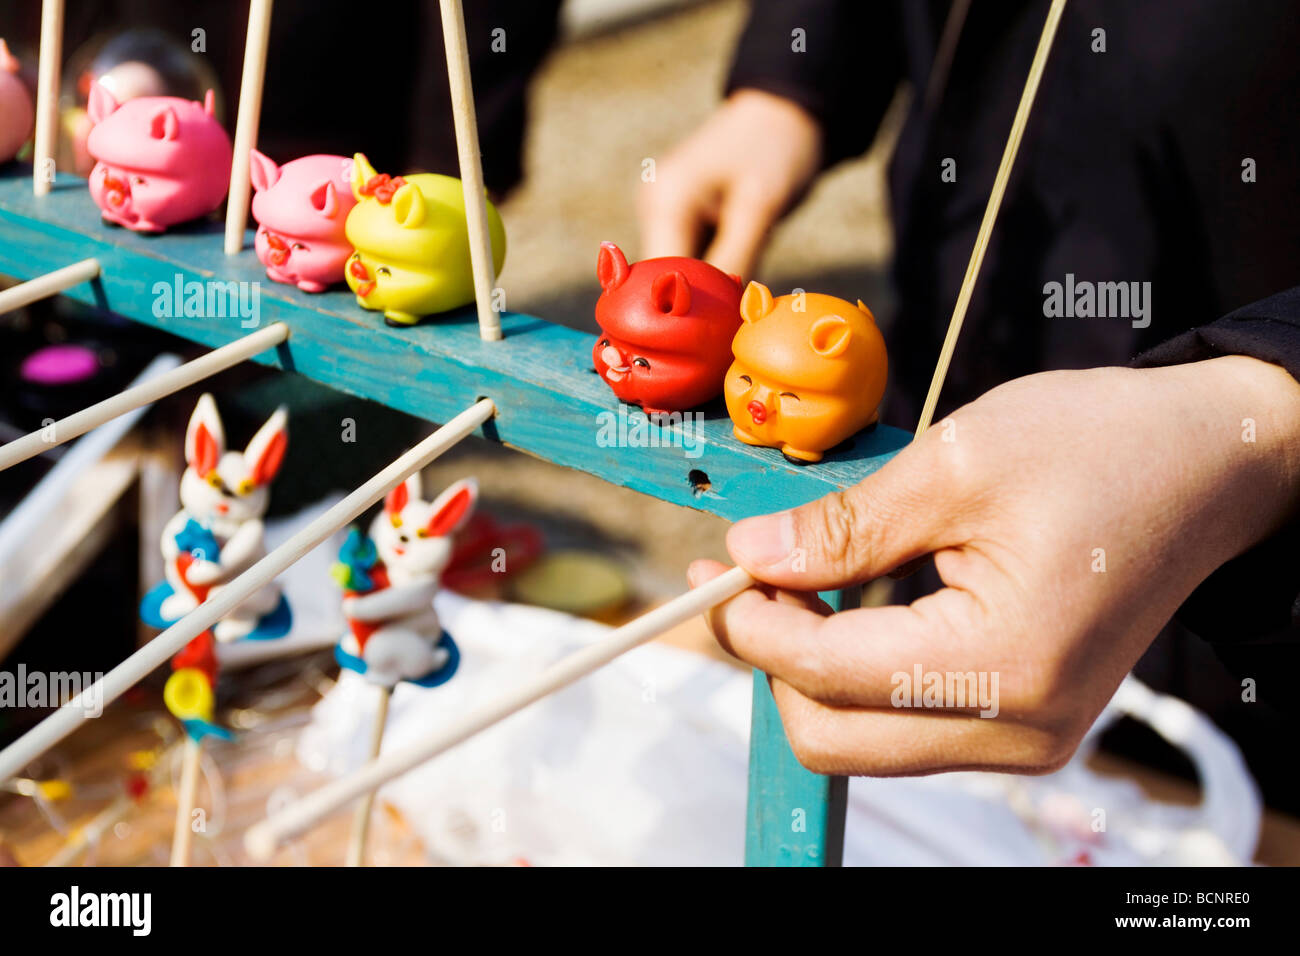 Traditional chinese toy flour dolls sold during dongyue temple fair during spring festival beijing